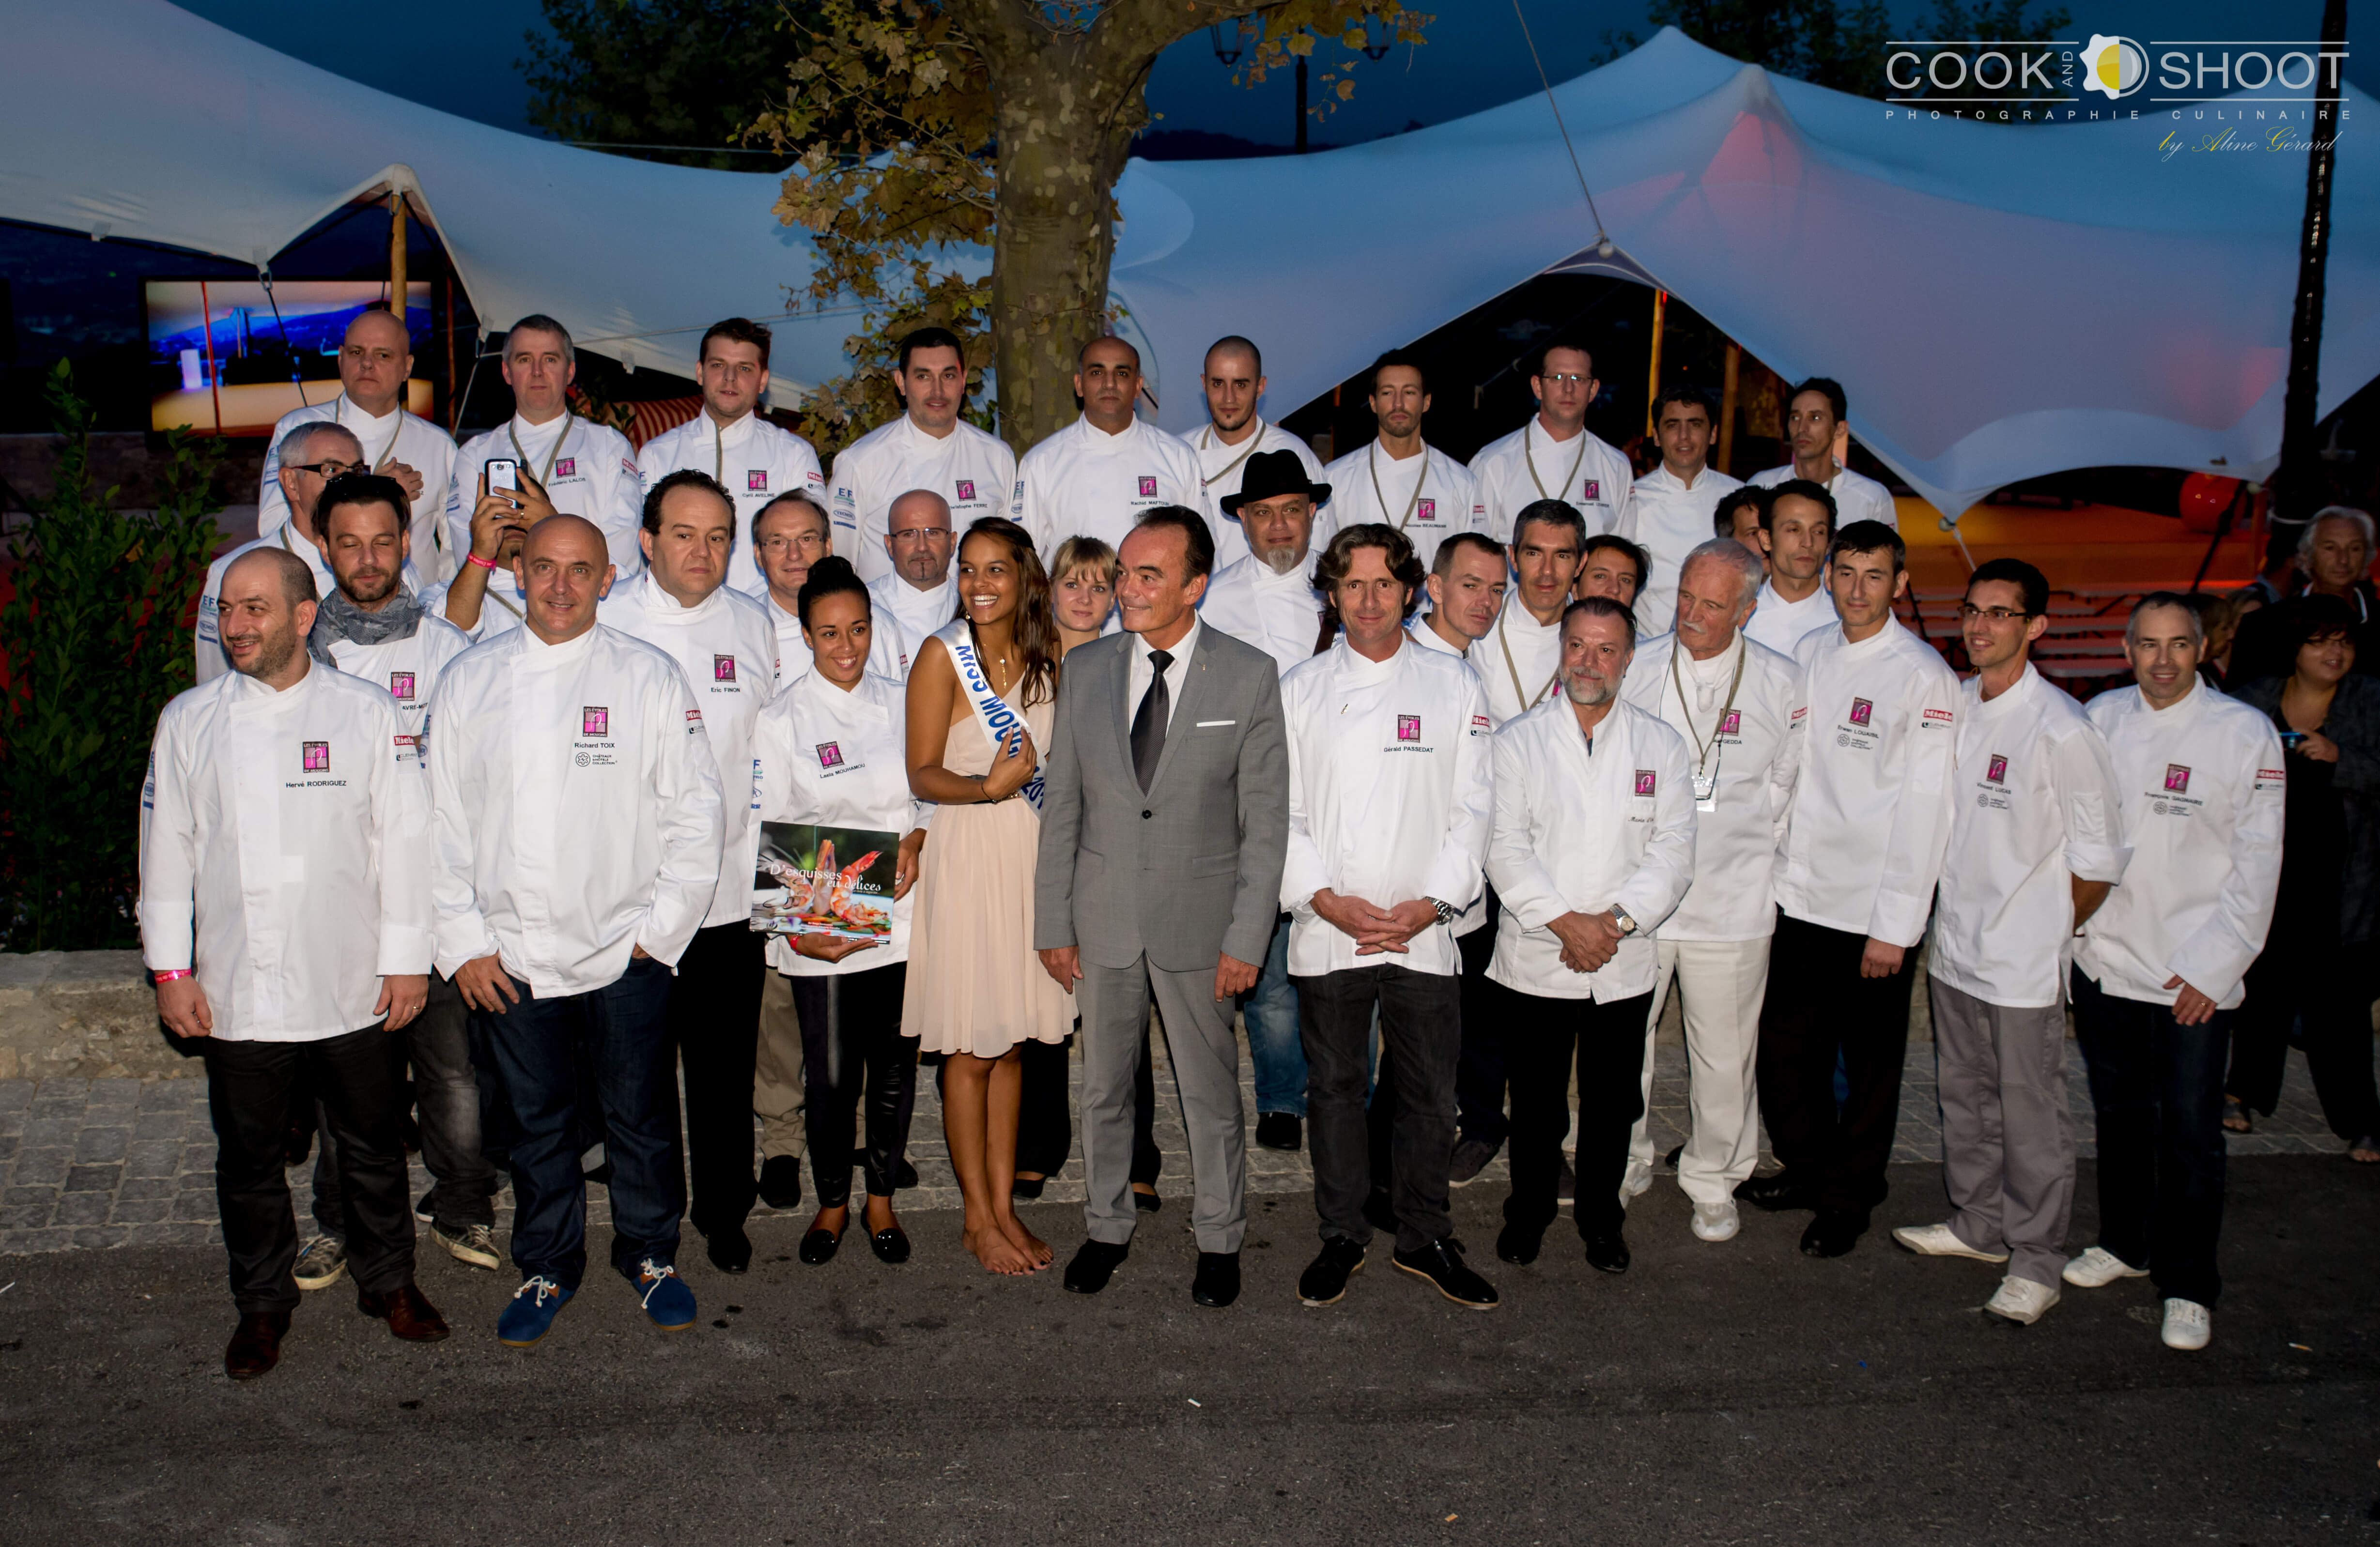 FIG2013-chefs-vincent-catala